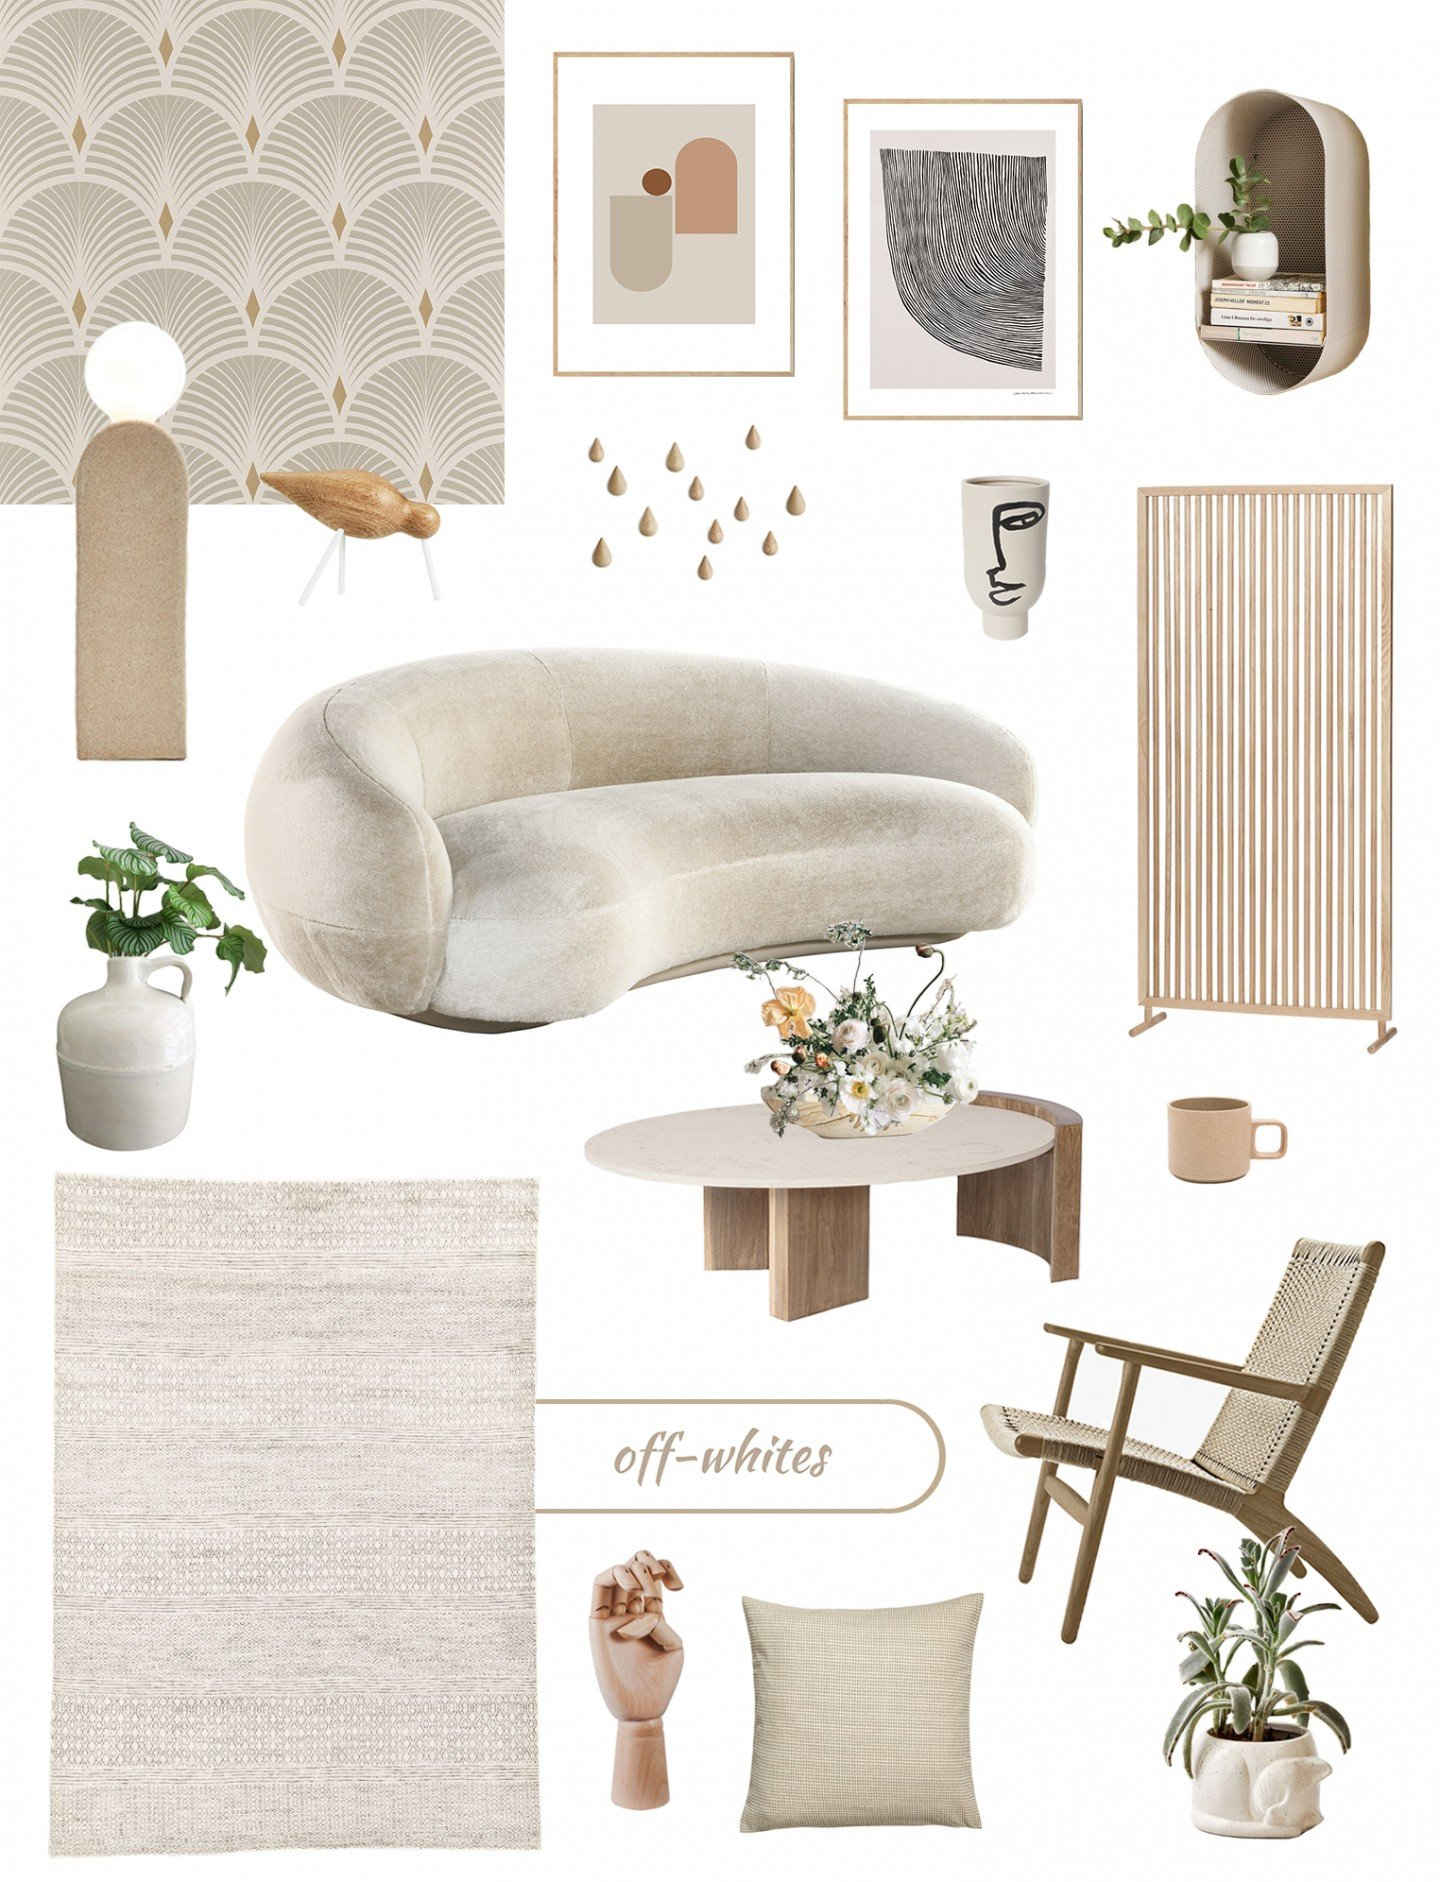 Interior Color Trend: Beige is Back